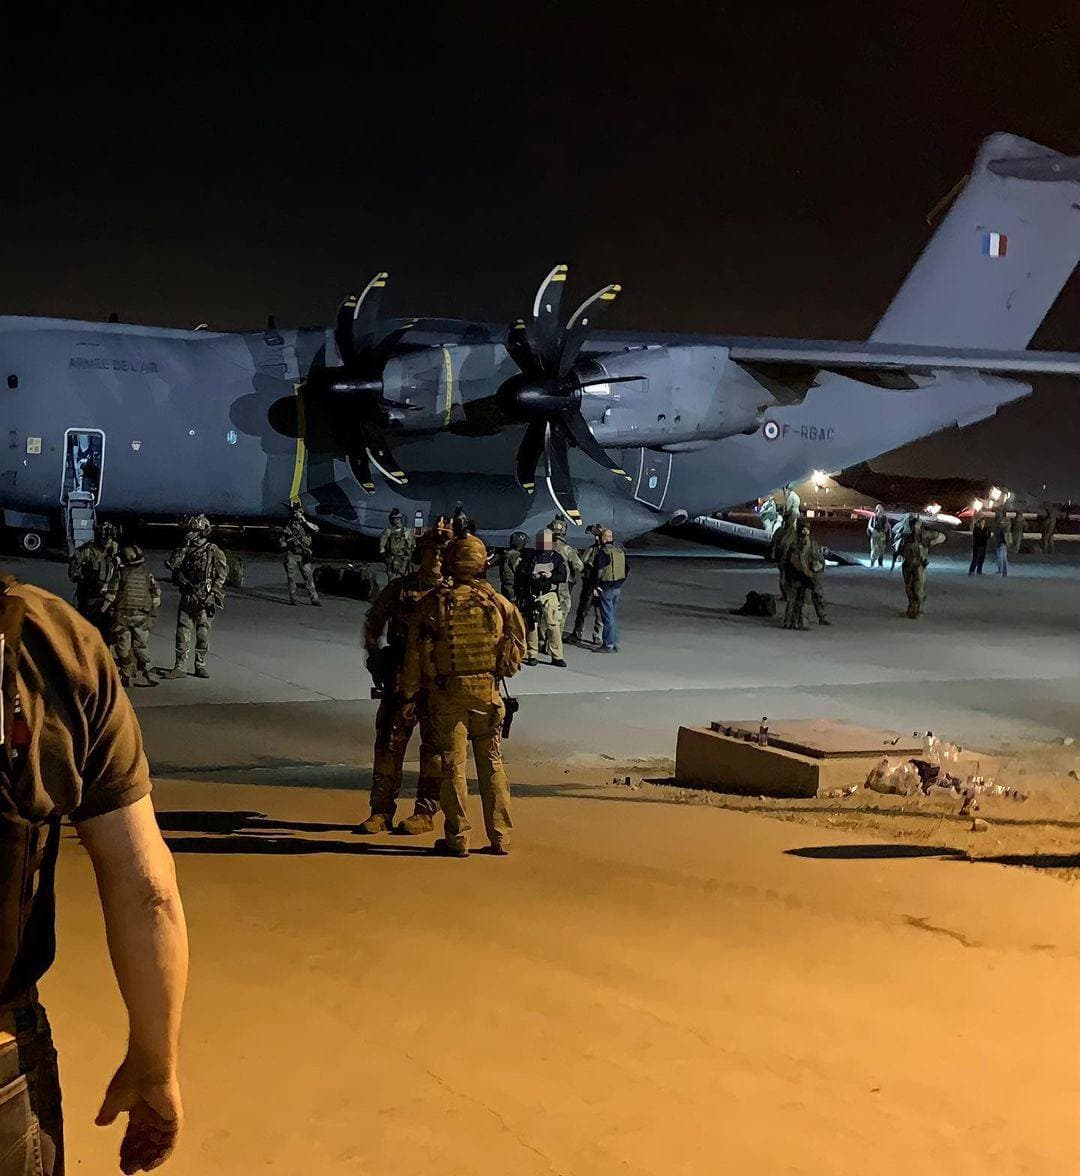 New Horrifying Footage Emerges As Evacuation From Kabul Resumes (Videos, 18+)